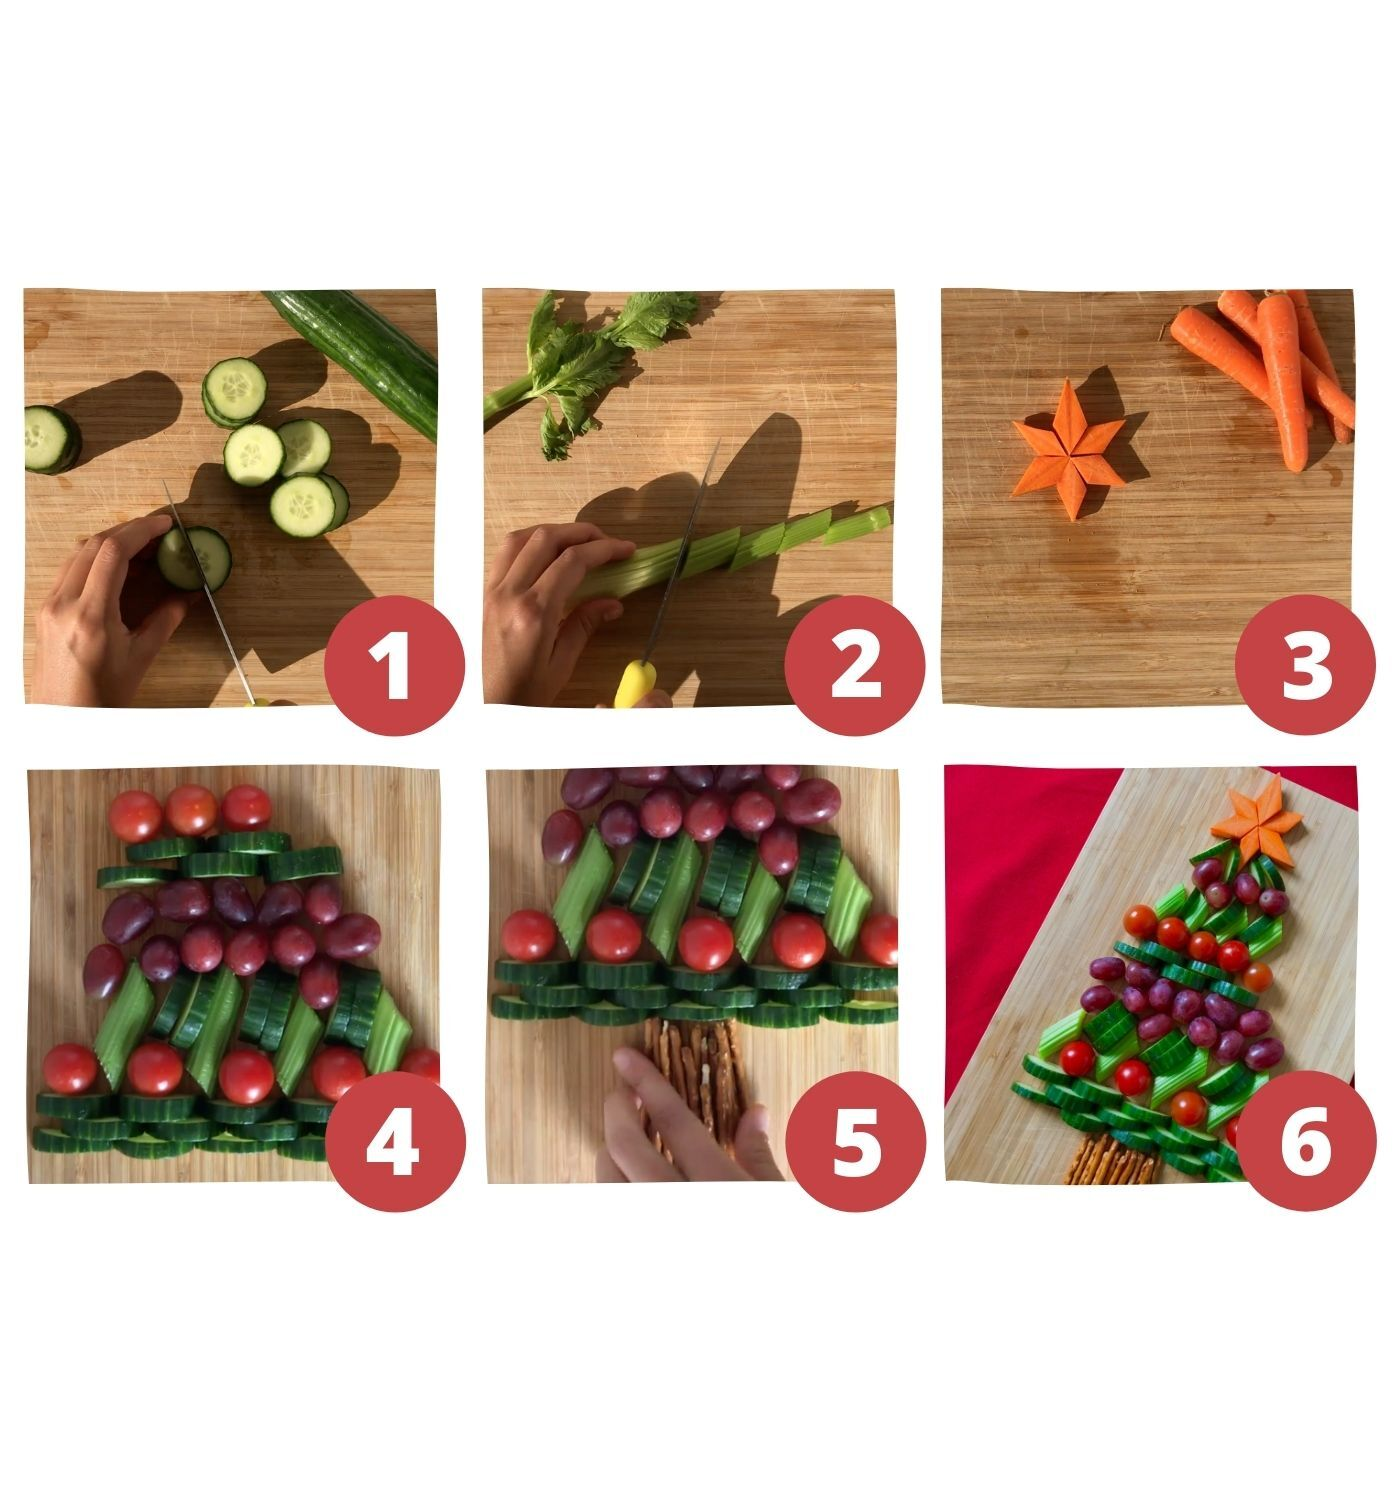 Fruit & Veg-kerstboom recept